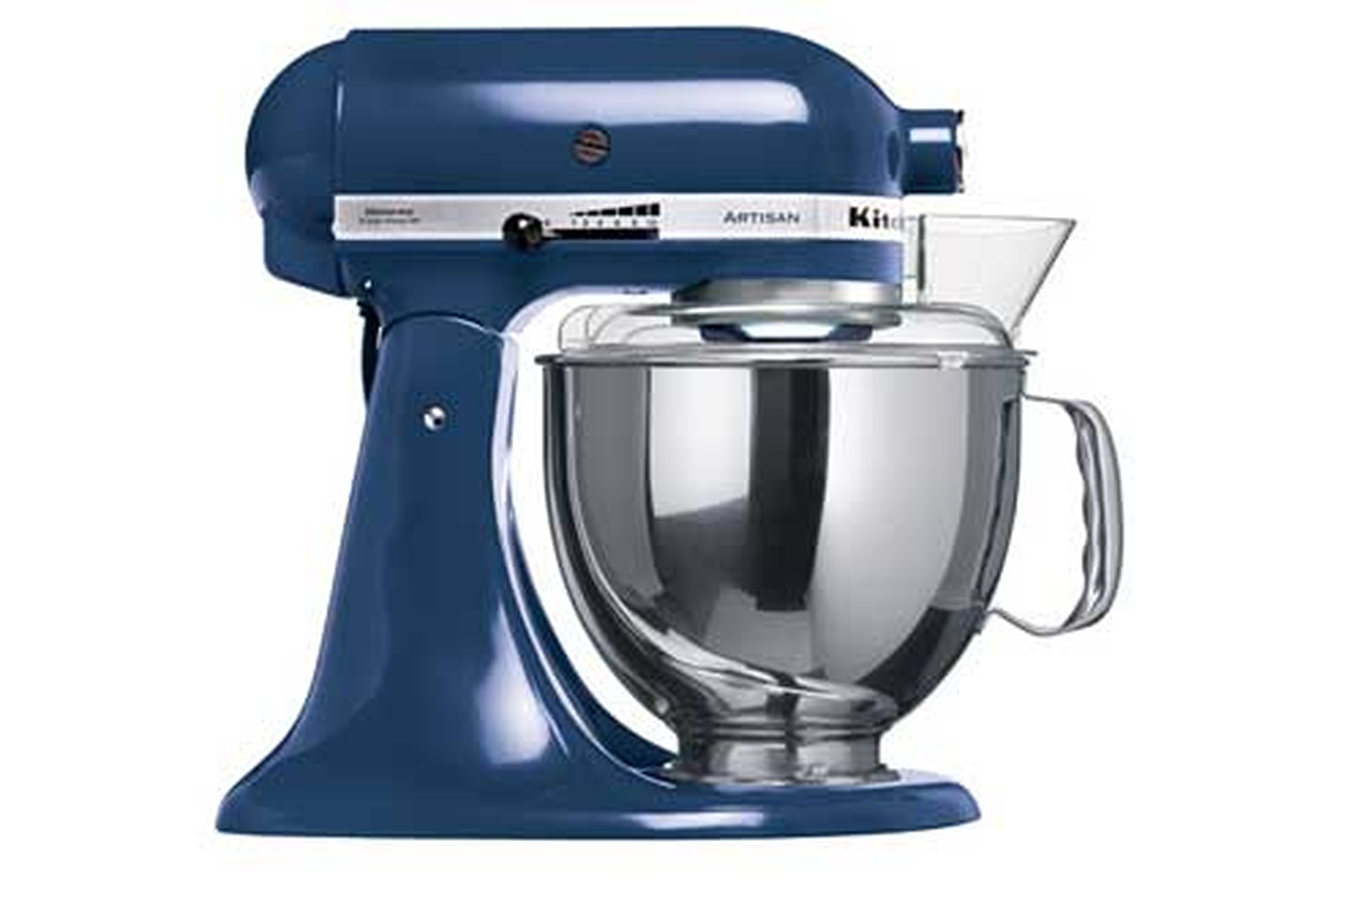 pack robot patissier kitchenaid 5ksm150 bleu av rape 3383040. Black Bedroom Furniture Sets. Home Design Ideas